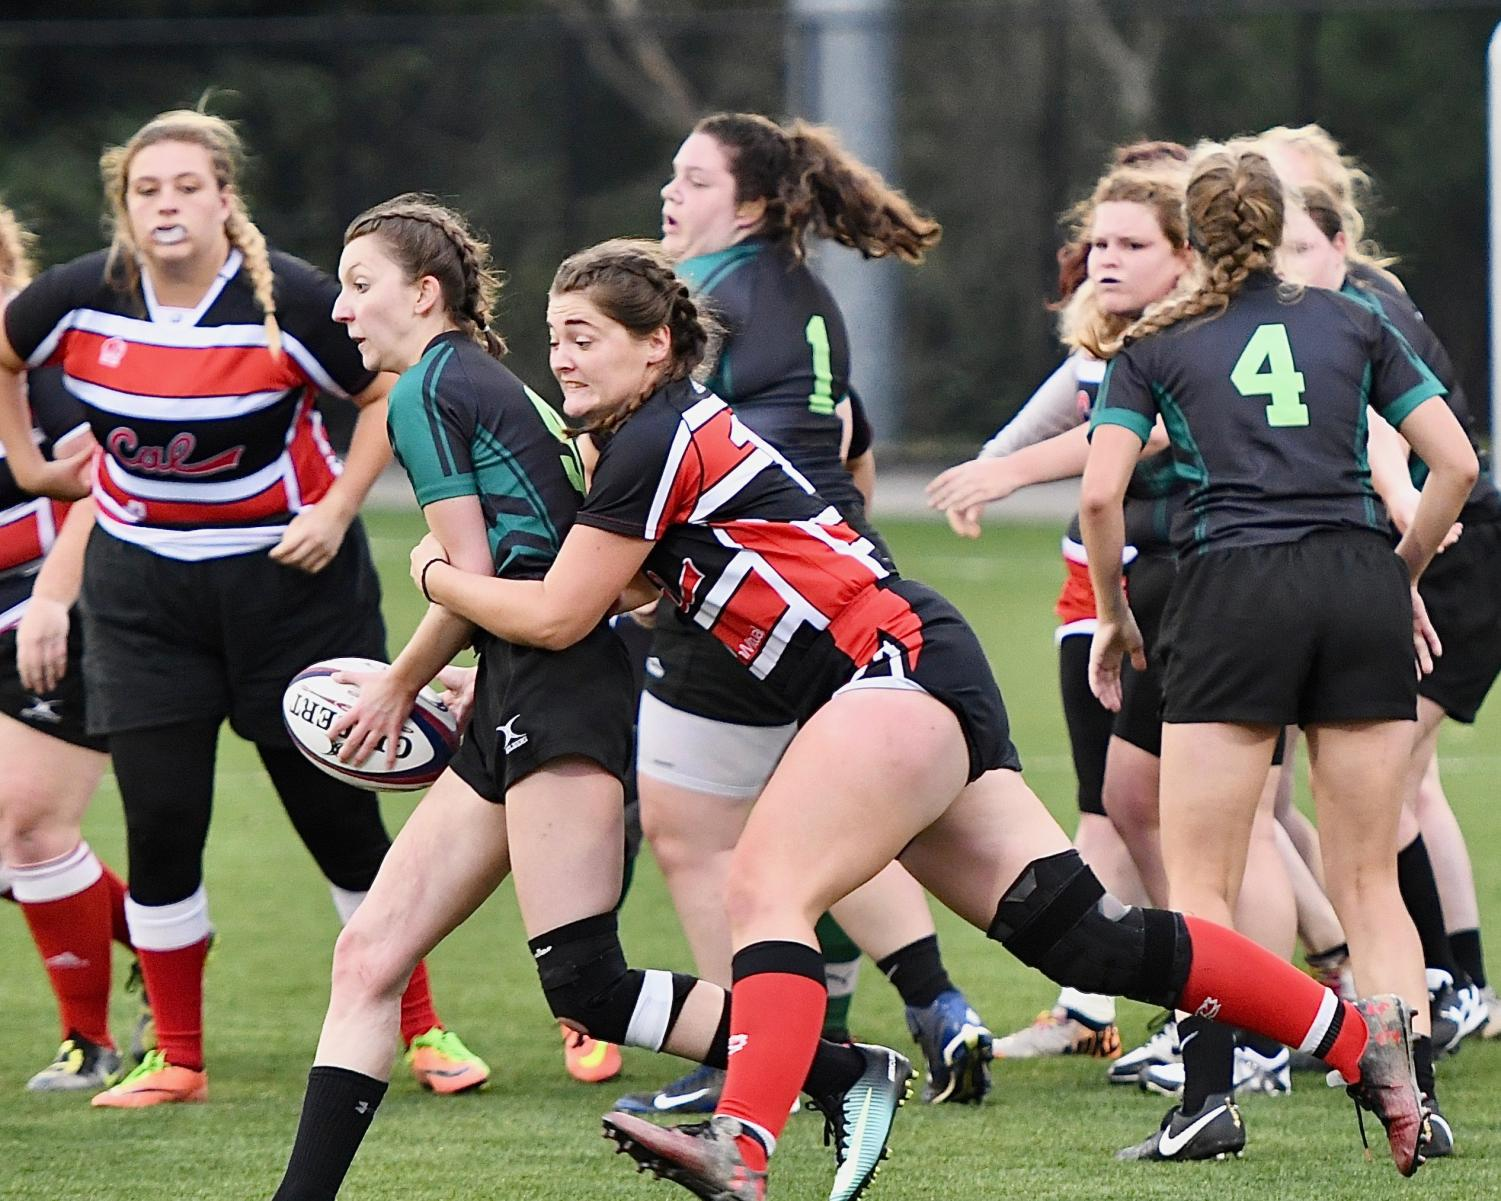 (Sept. 22) Cal U women's rugby team defeats St. Vincent at home 55-0